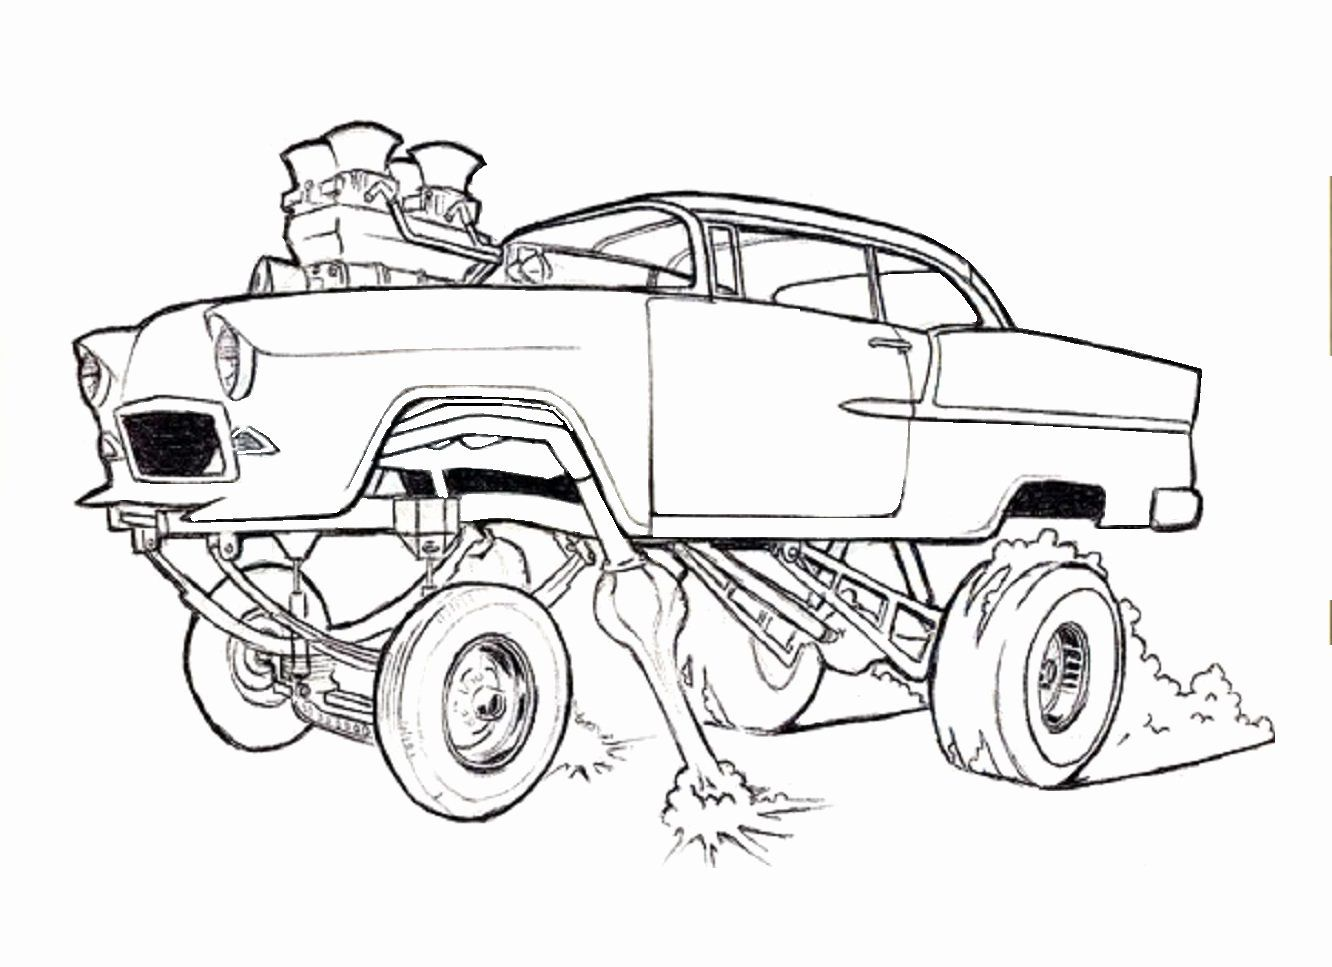 Coloring Pages Cars Trucks Fresh Coloring Ideas Dune Buggy Coloring Page Ideas Pin By Kappa Cartoon Car Drawing Car Artwork Car Wall Art